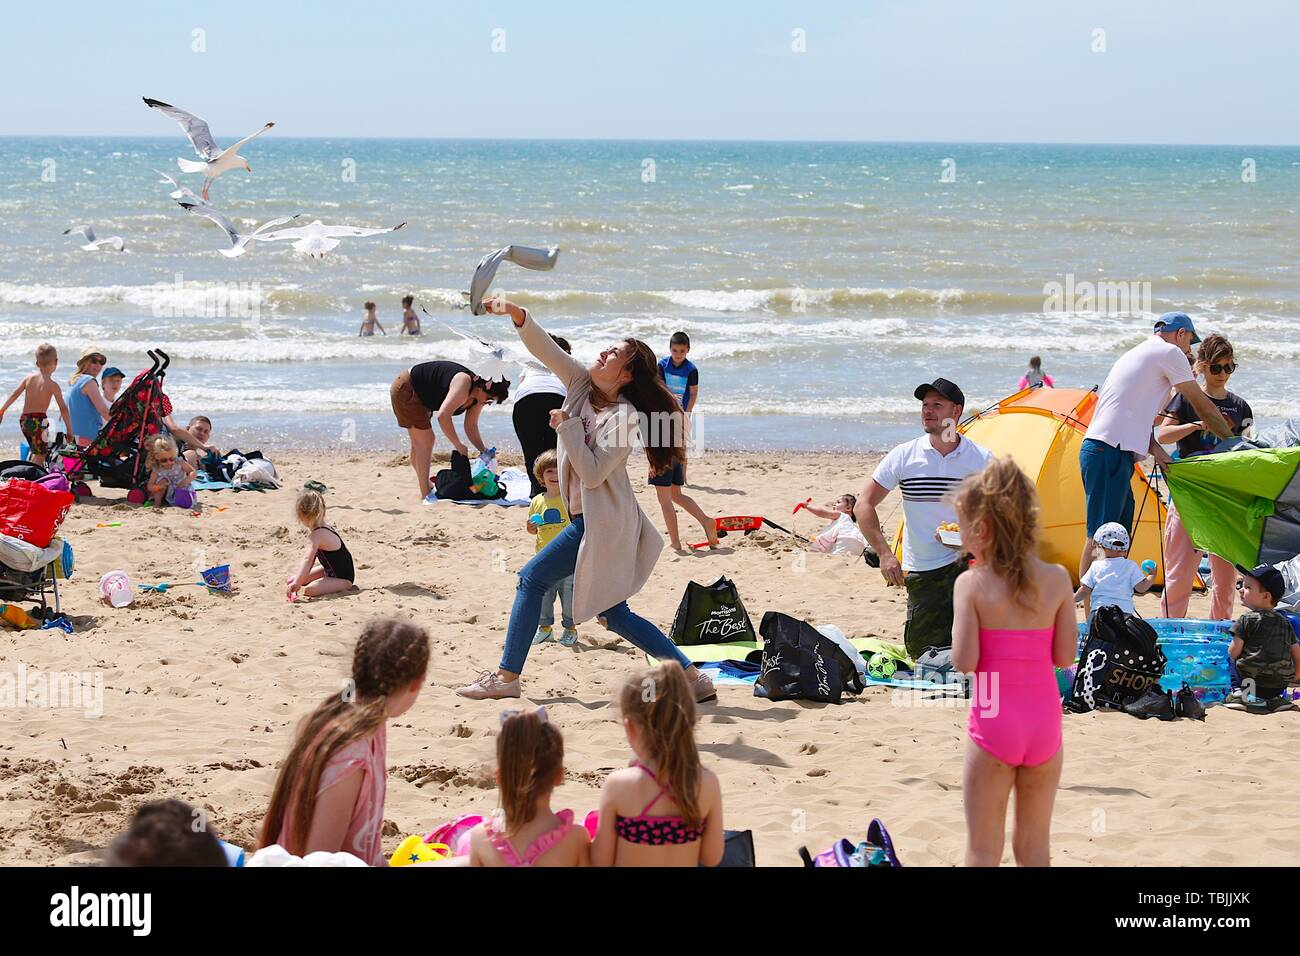 Camber, East Sussex, UK. 02 Jun, 2019. UK Weather: The weekend continues with hot and sunny weather with only a slight breeze in the air at Camber Sands in East Sussex on the South East coast, temperatures are expected to be slightly lower than the highs of Saturday. The dangers of eating on the beach as this lady tries to scare away the seagulls. © Paul Lawrenson 2019, Photo Credit: Paul Lawrenson/Alamy Live News Stock Photo